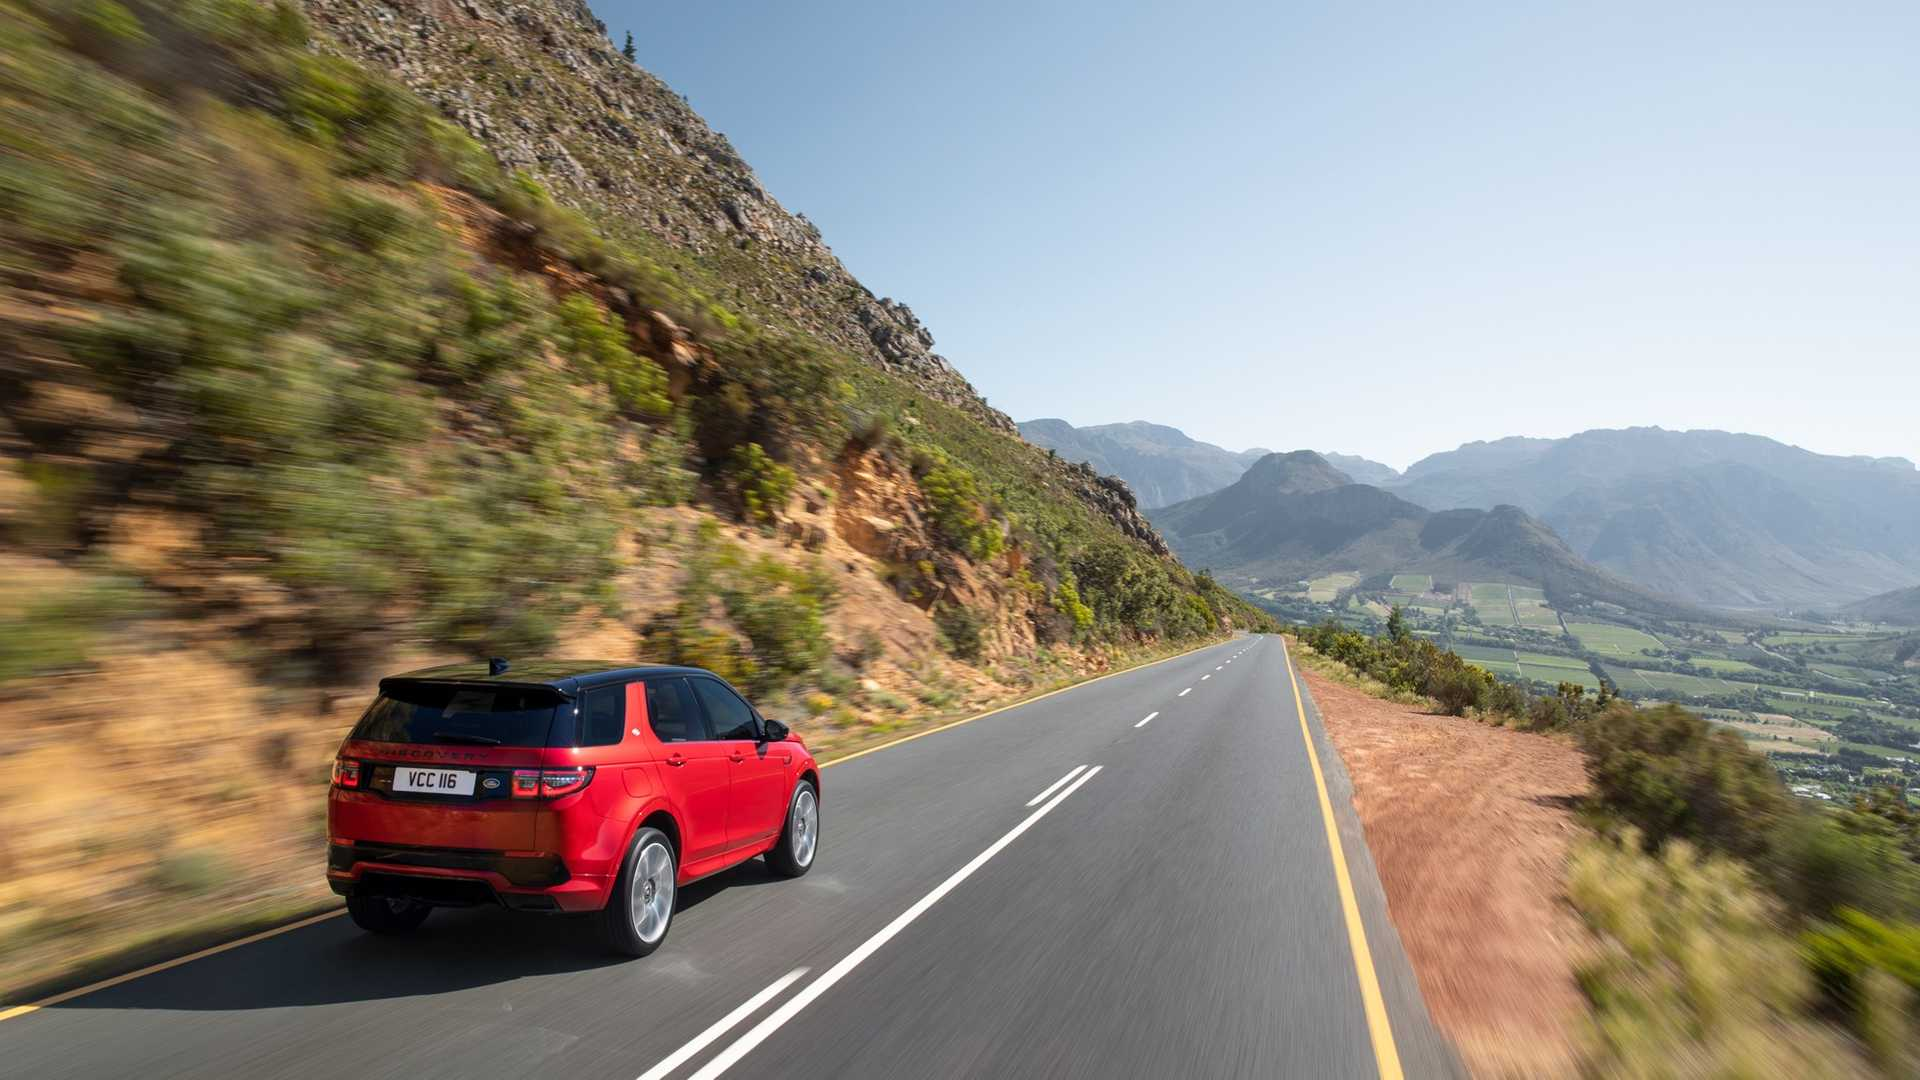 2020-land-rover-discovery-sport-13